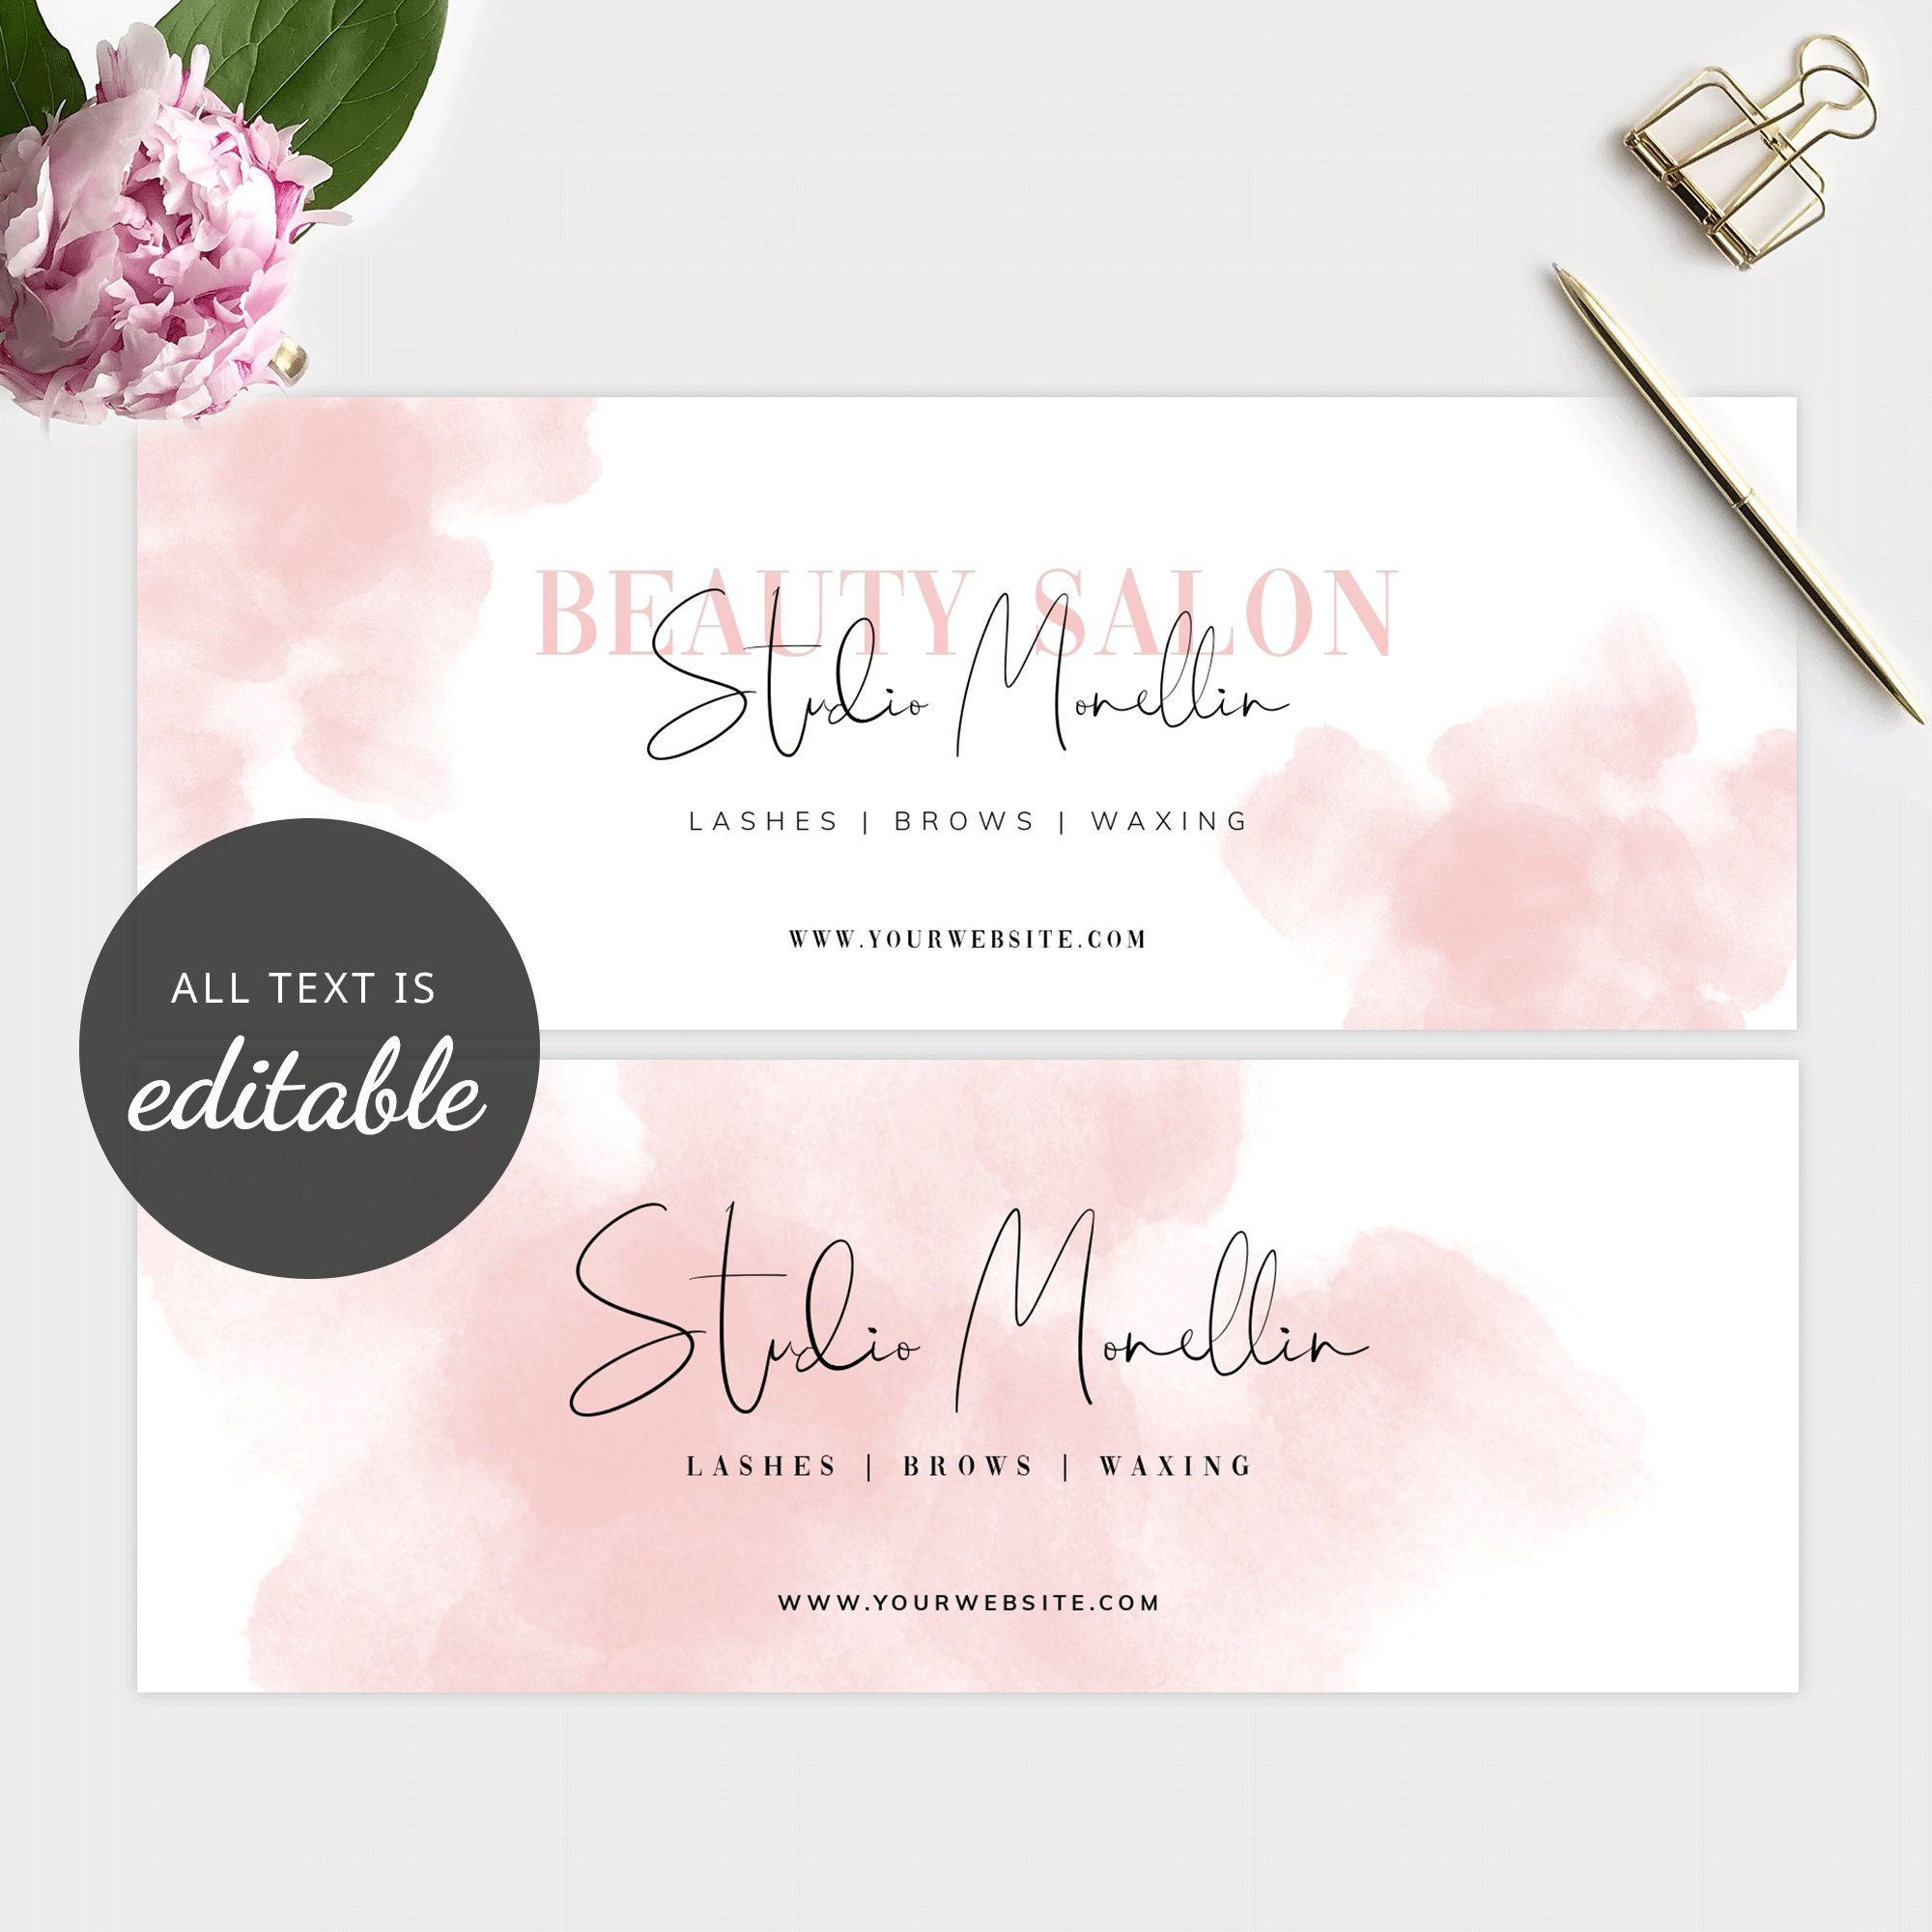 Diy Facebook Cover Design Facebook Page Banner Template Etsy Photography Invoice Template Facebook Cover Design Photography Invoice